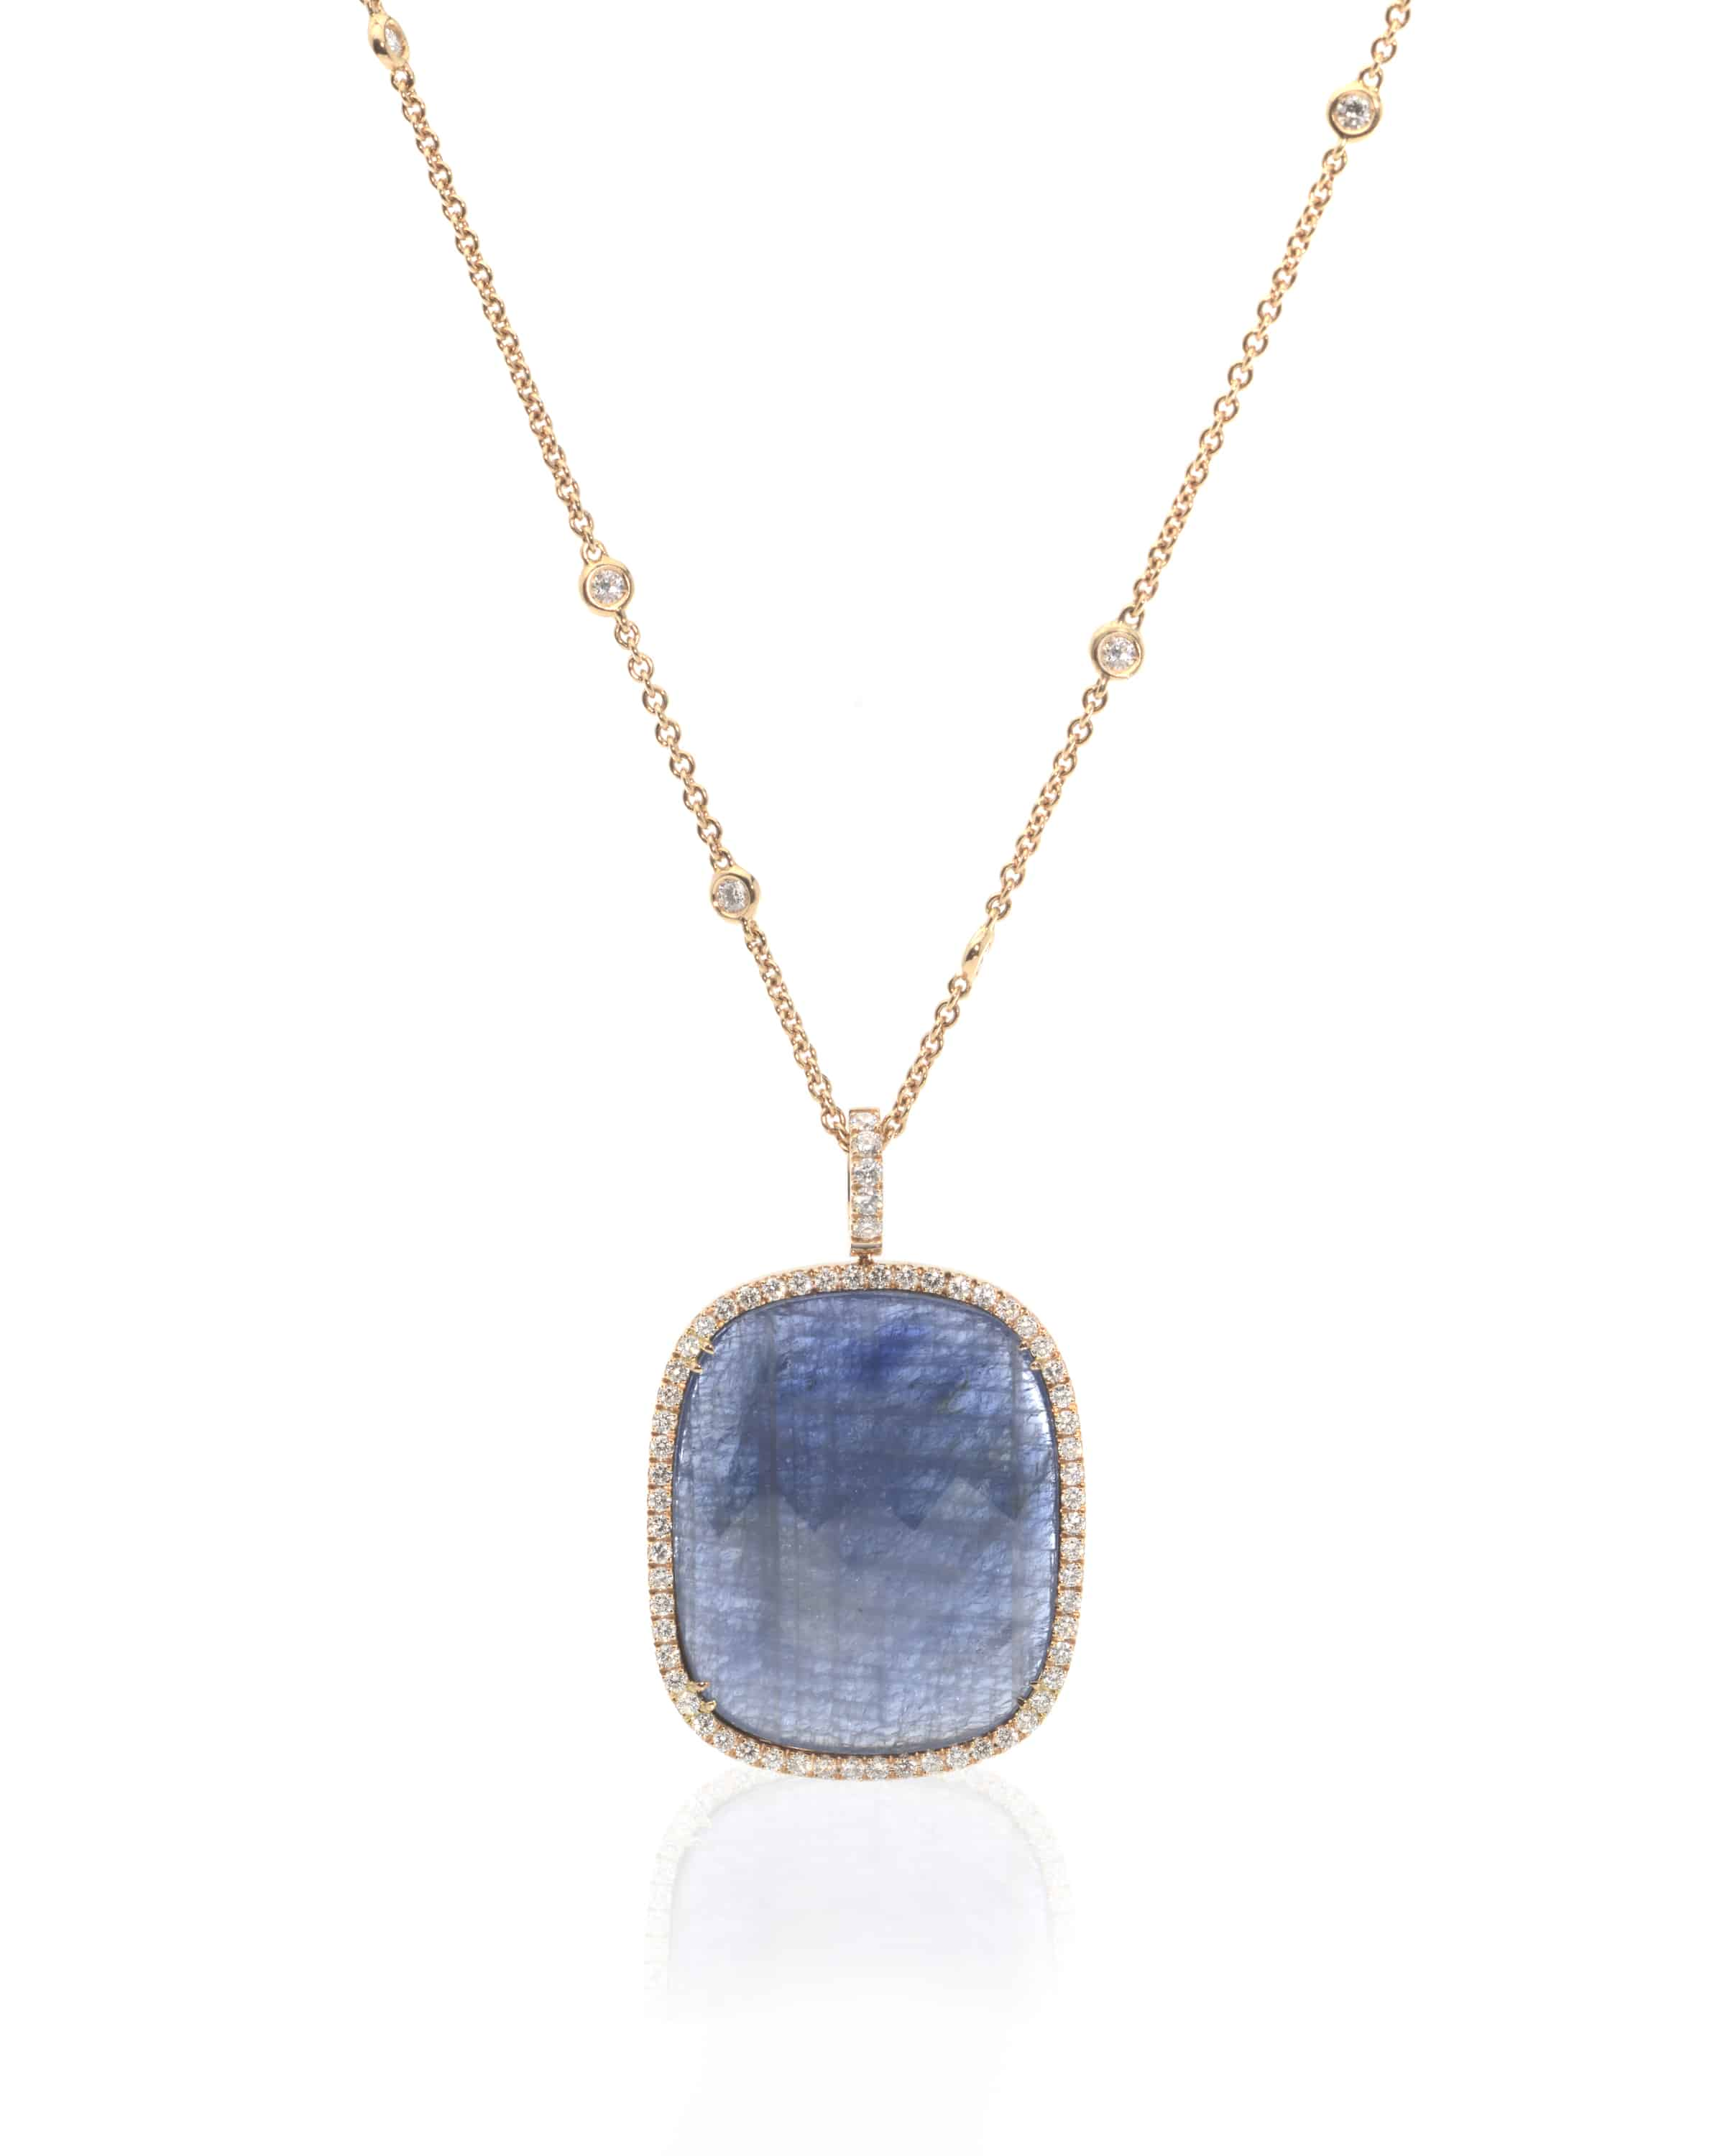 Crivelli 18k Yellow Gold Diamond And Sapphire Pendant Necklace 000-2754NS - 72918361